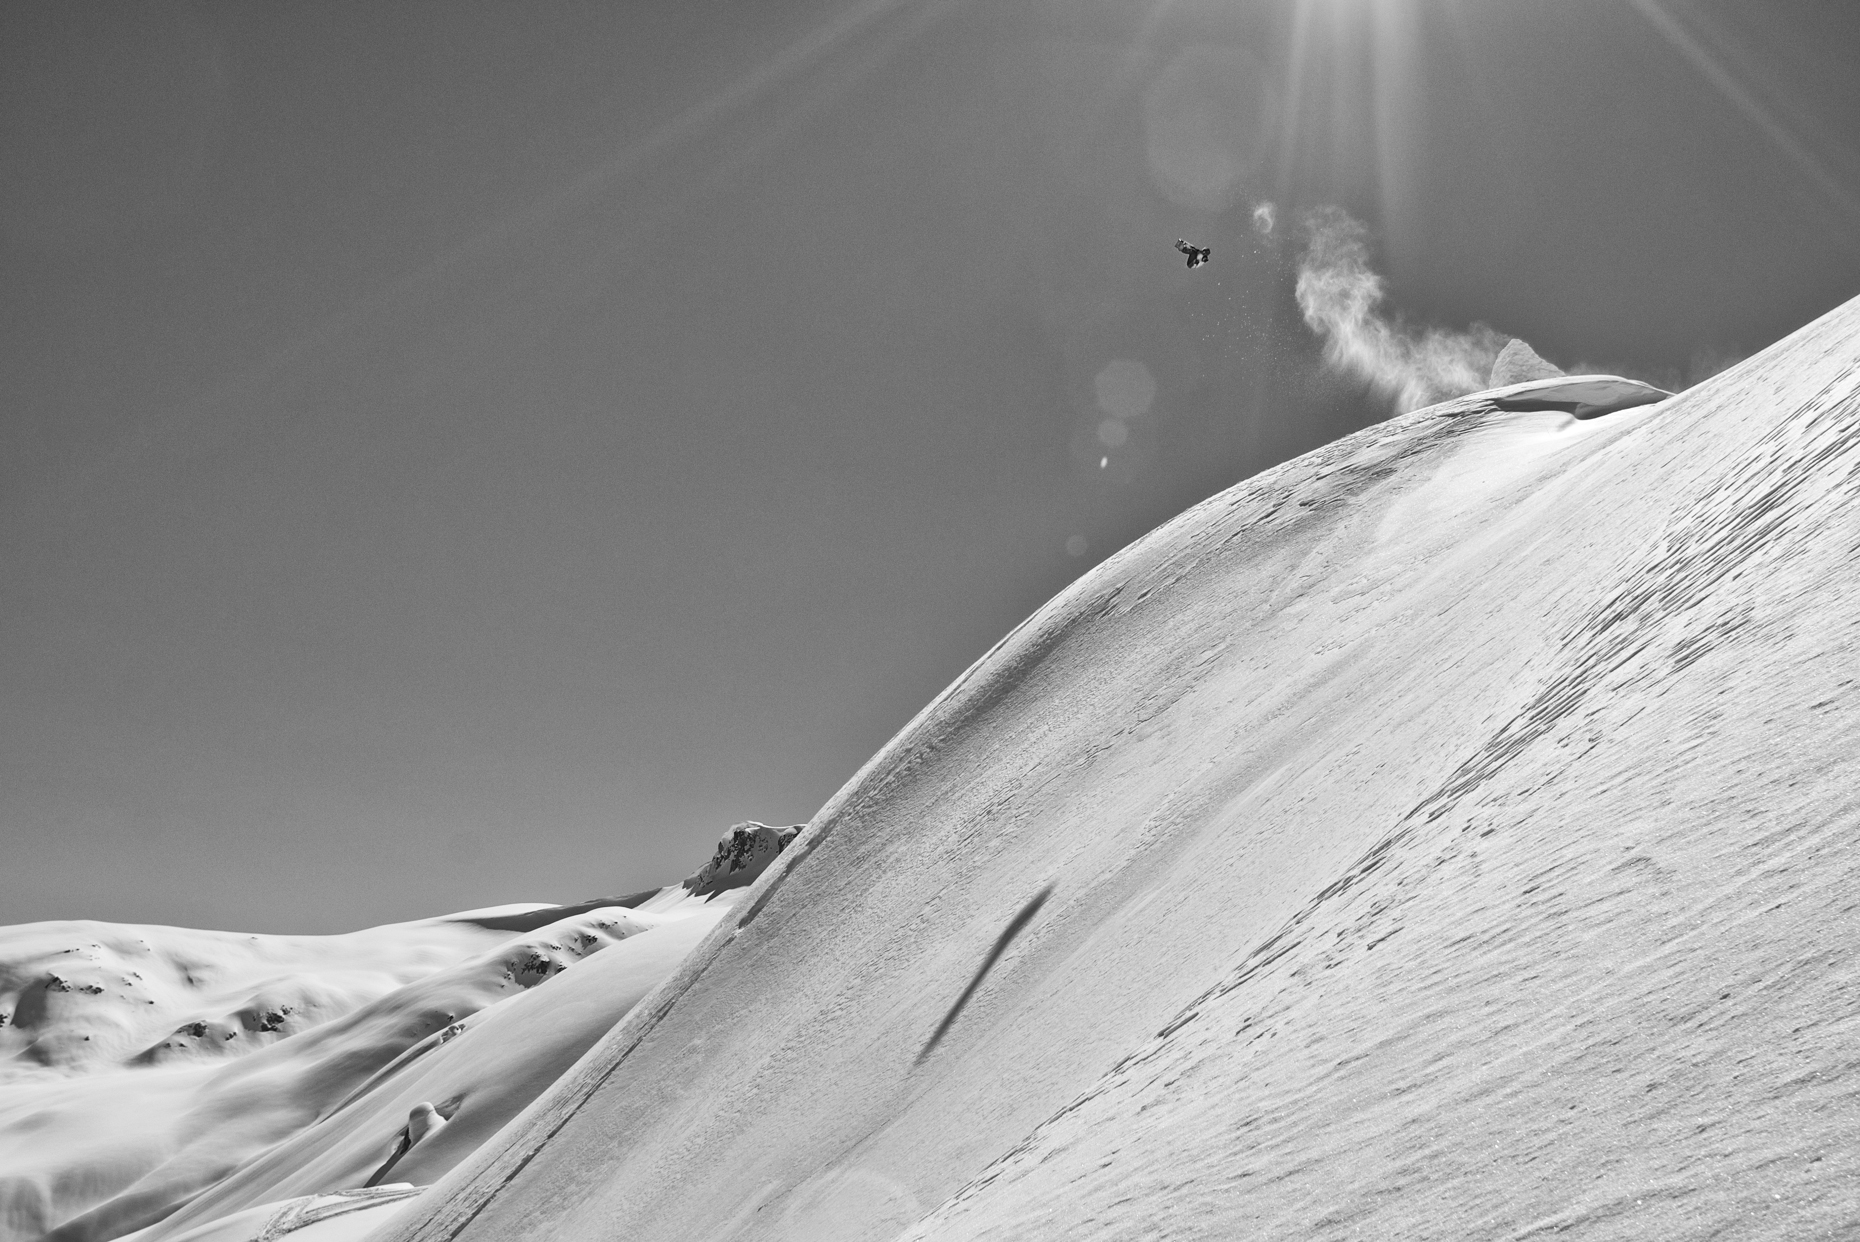 Mikey_Rencz_BS_1080_Mute_DBL_Cork_Whistler_BC-B+W-02